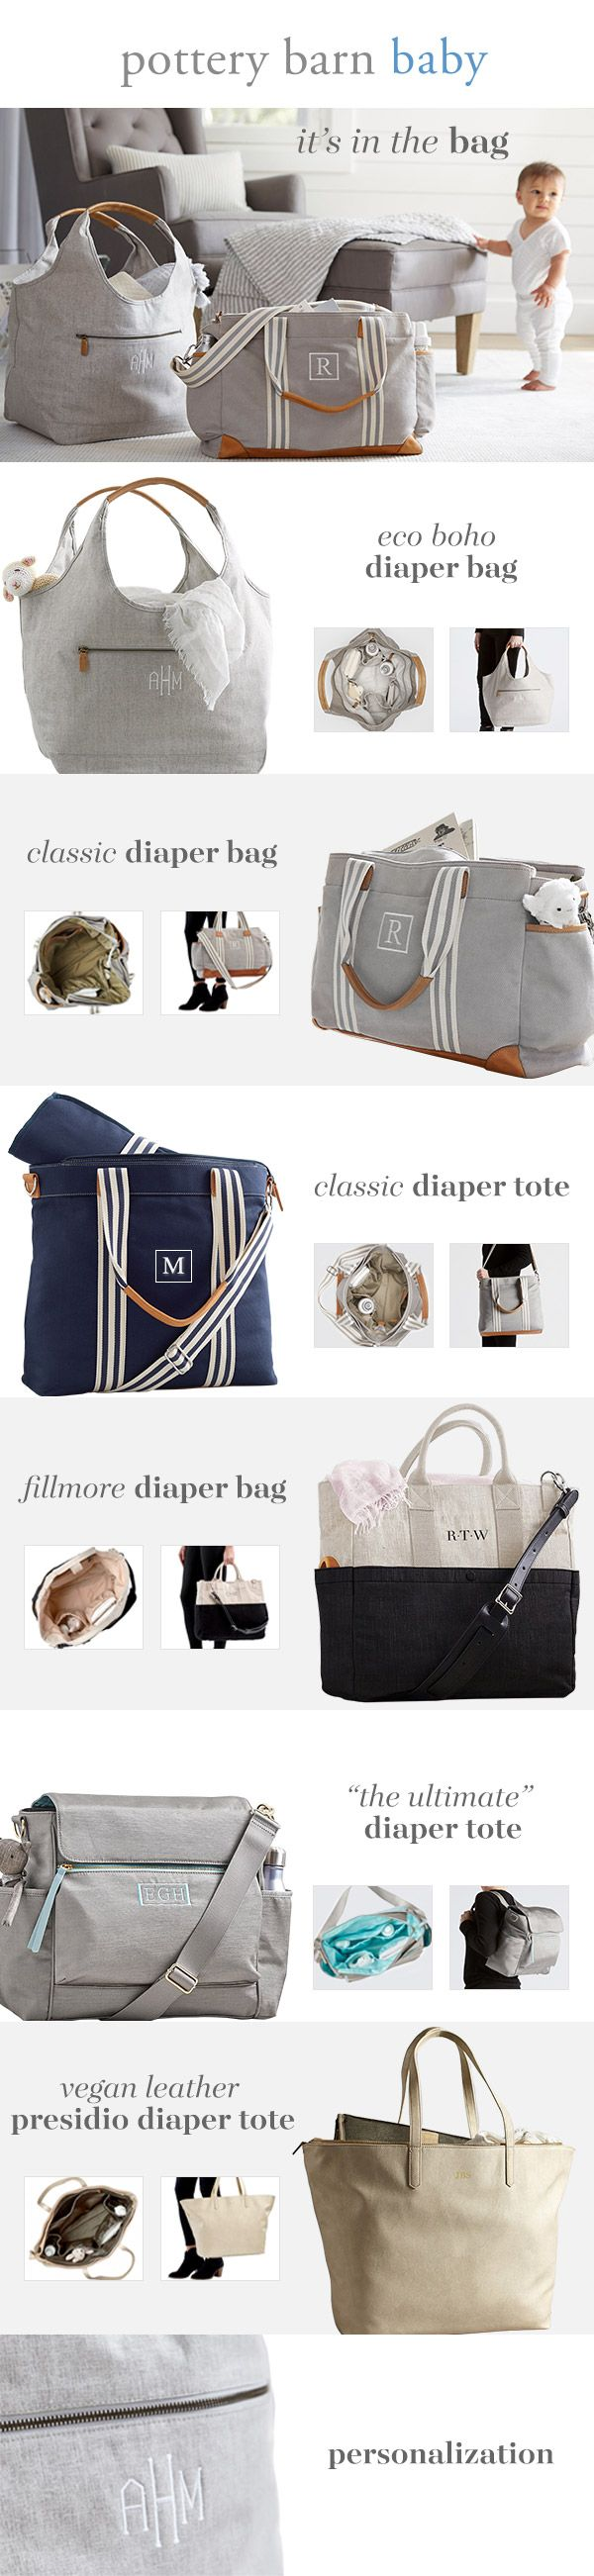 Trying to find the perfect diaper bag? Take a closer look at our seven most popular bags, made with helpful features like changing pad inserts and cross-body straps.